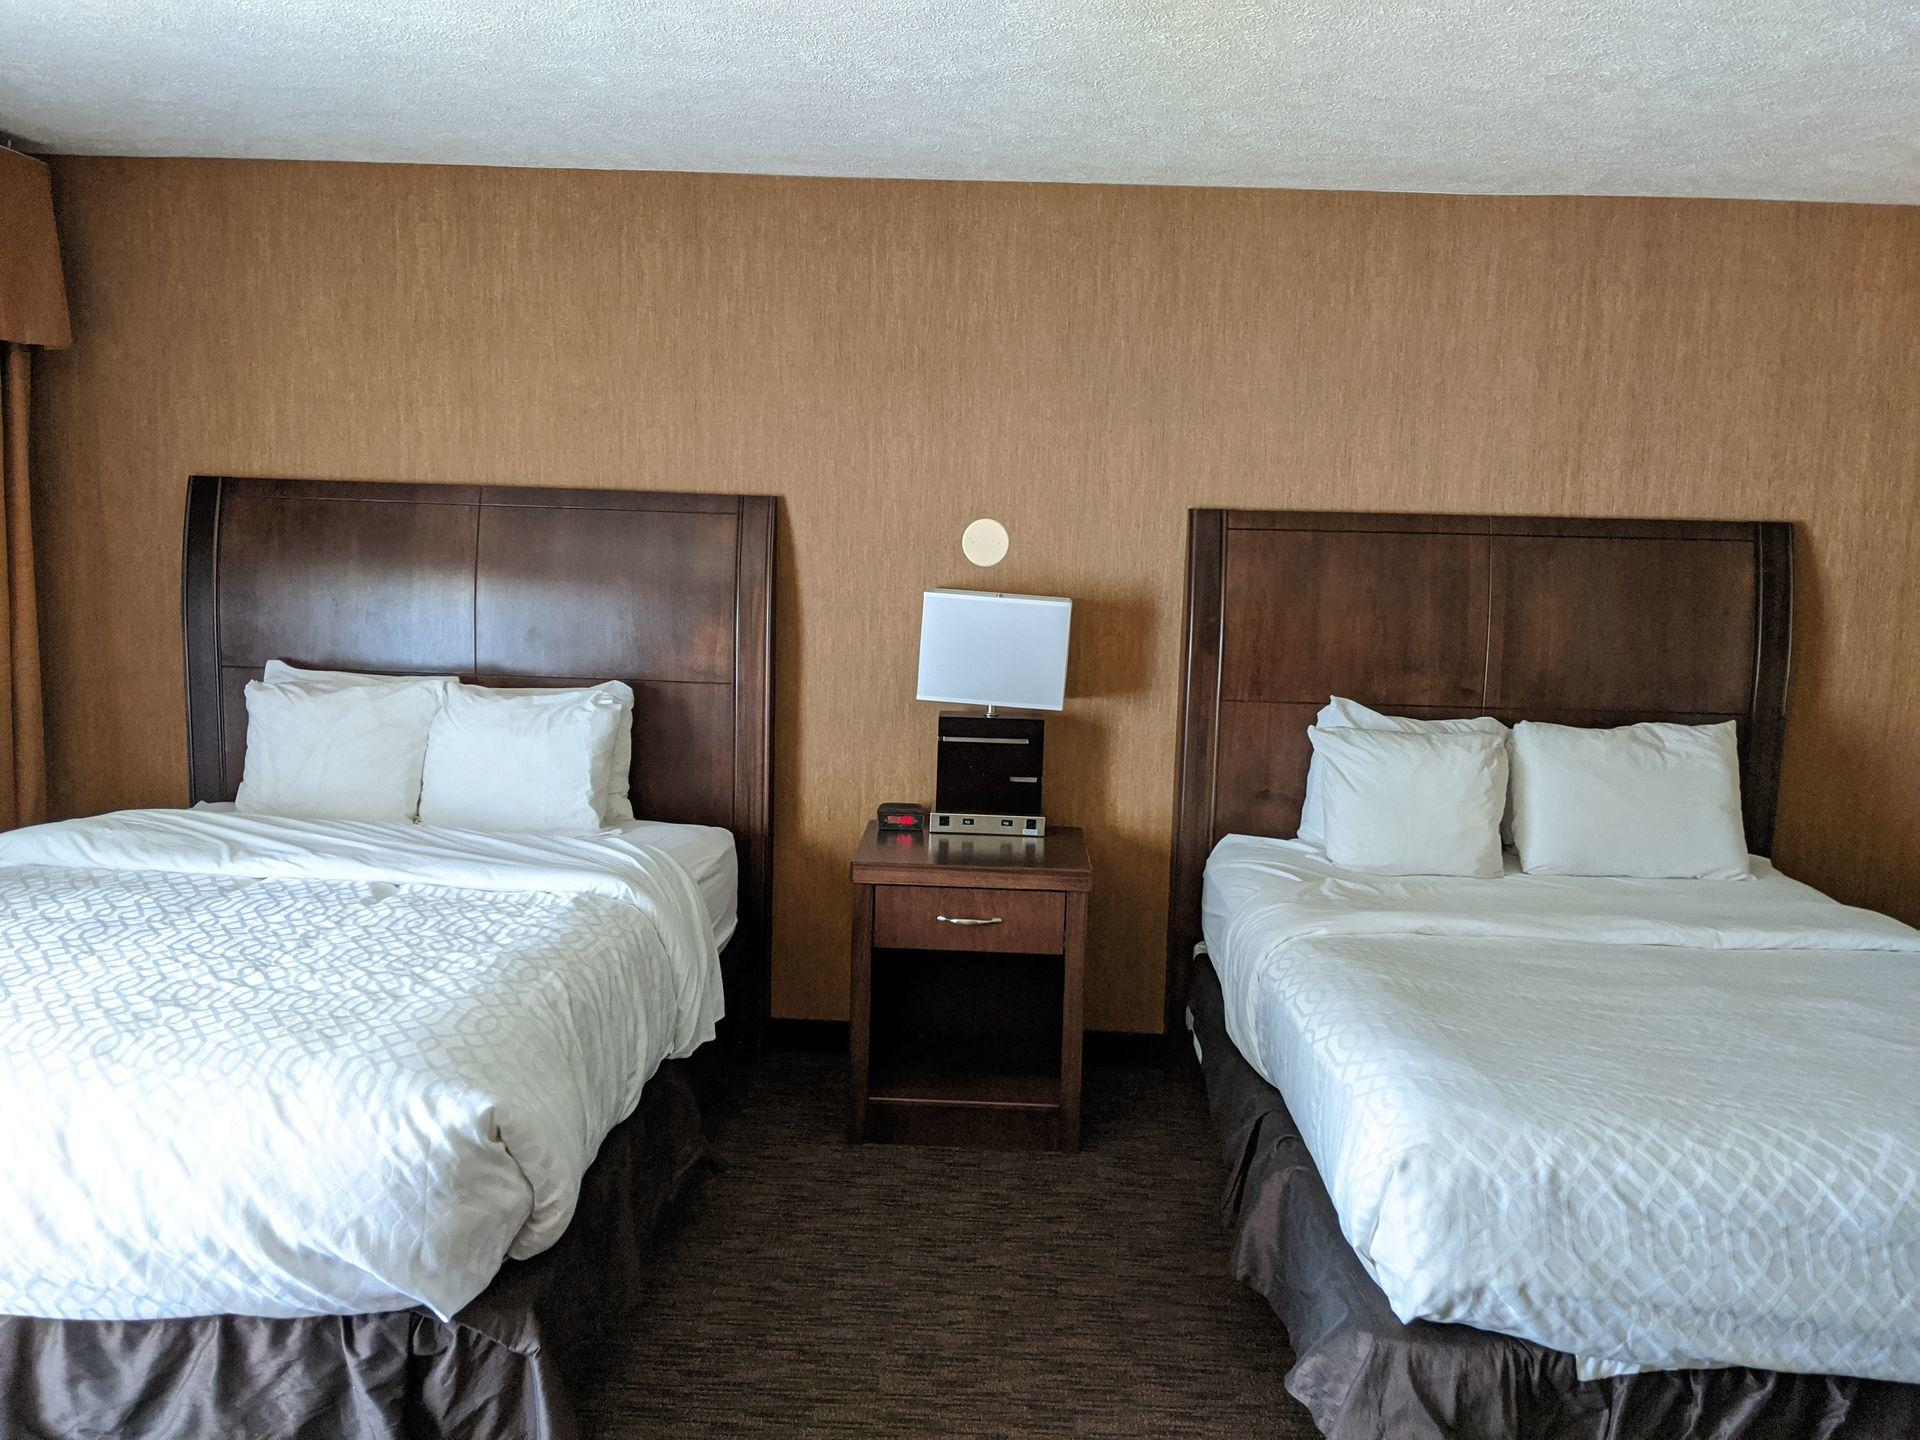 room with two beds and nightstand